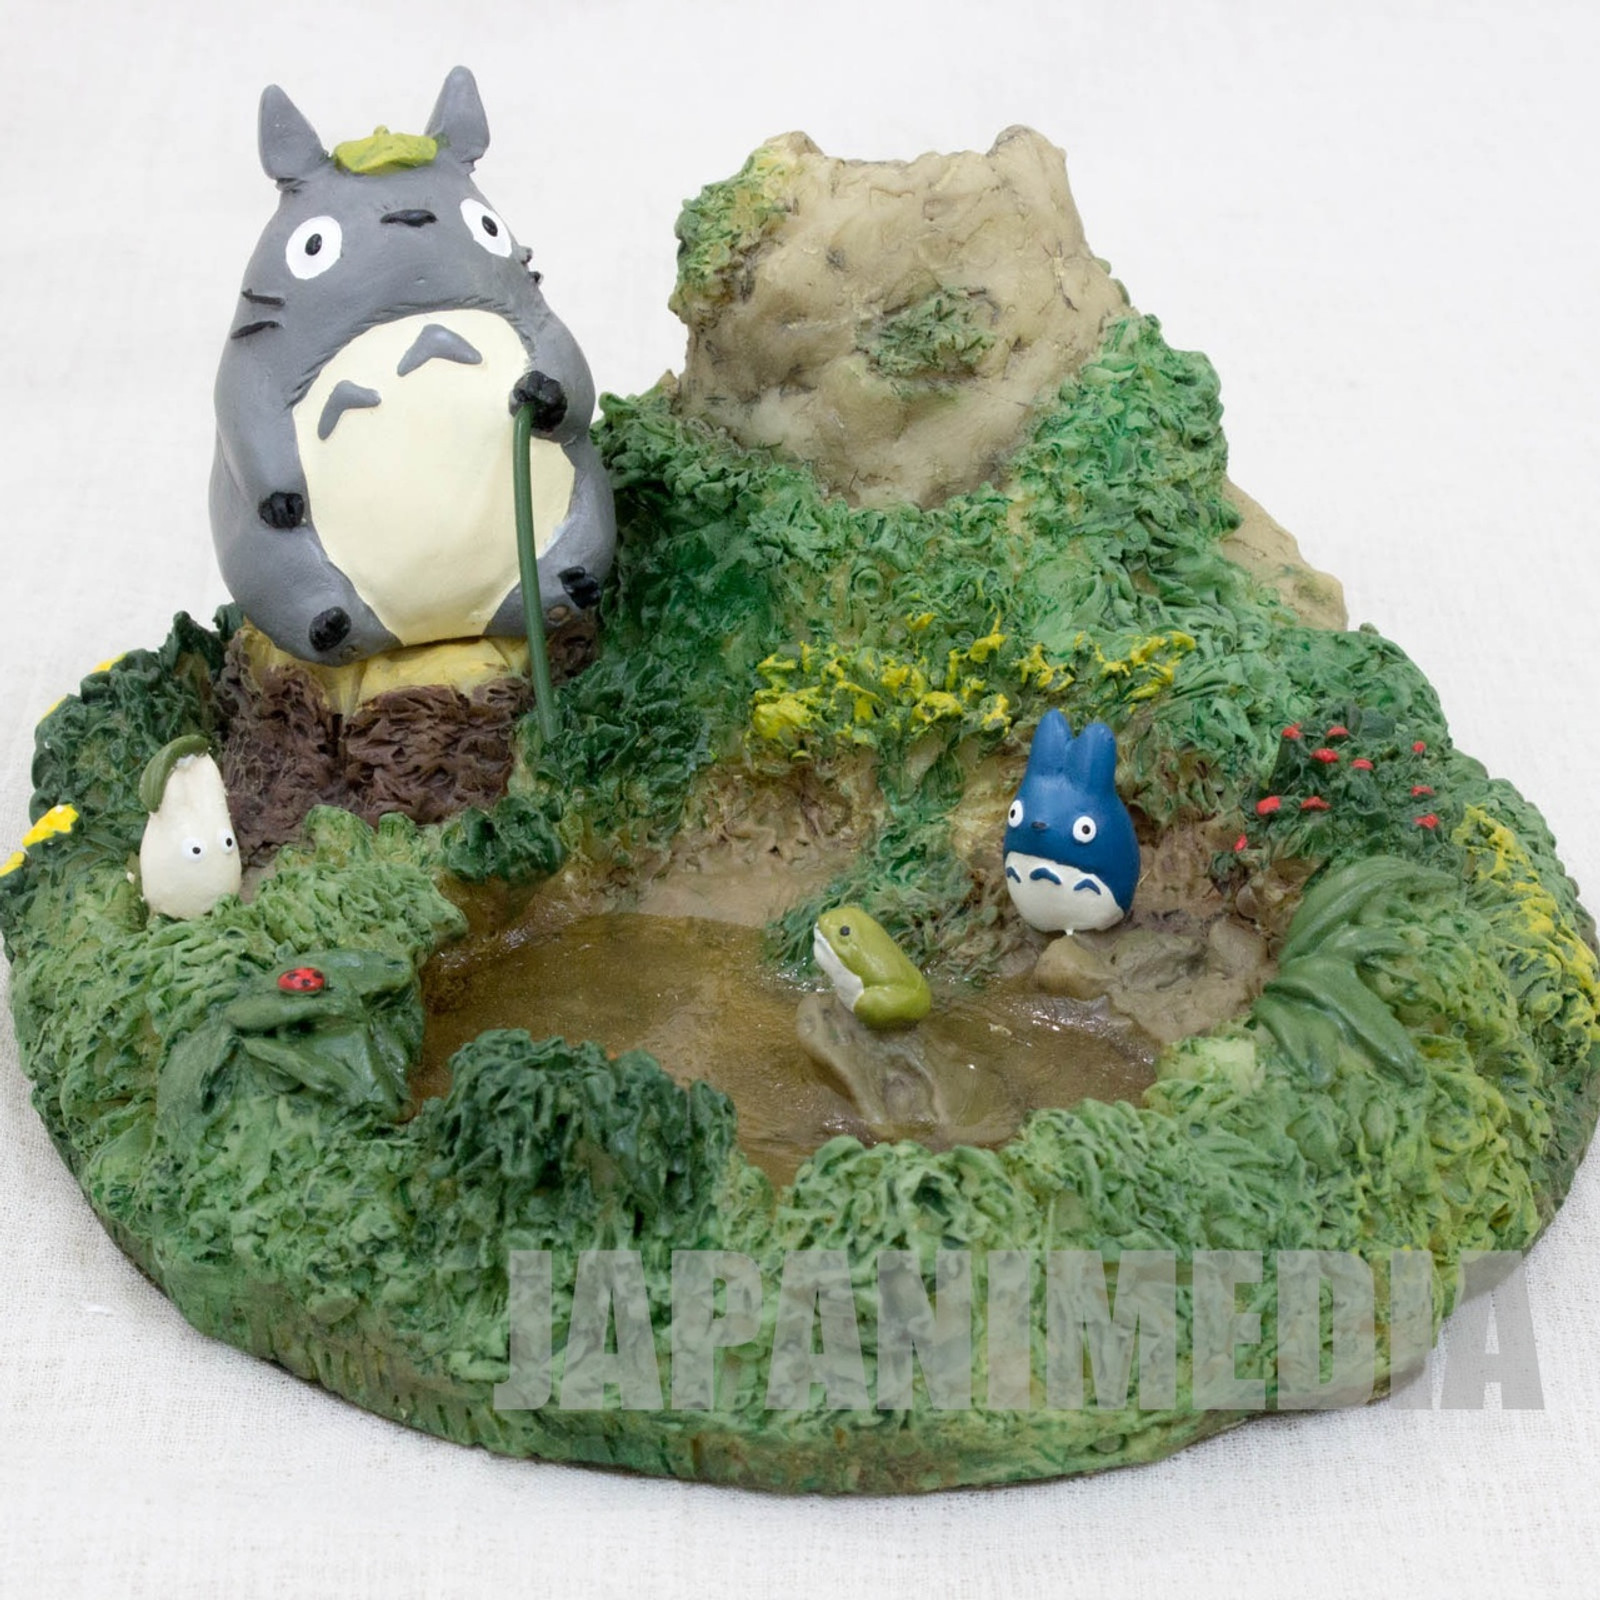 My Neighbor Totoro Diorama Figure Vase for one Flower Ghibli JAPAN ANIME